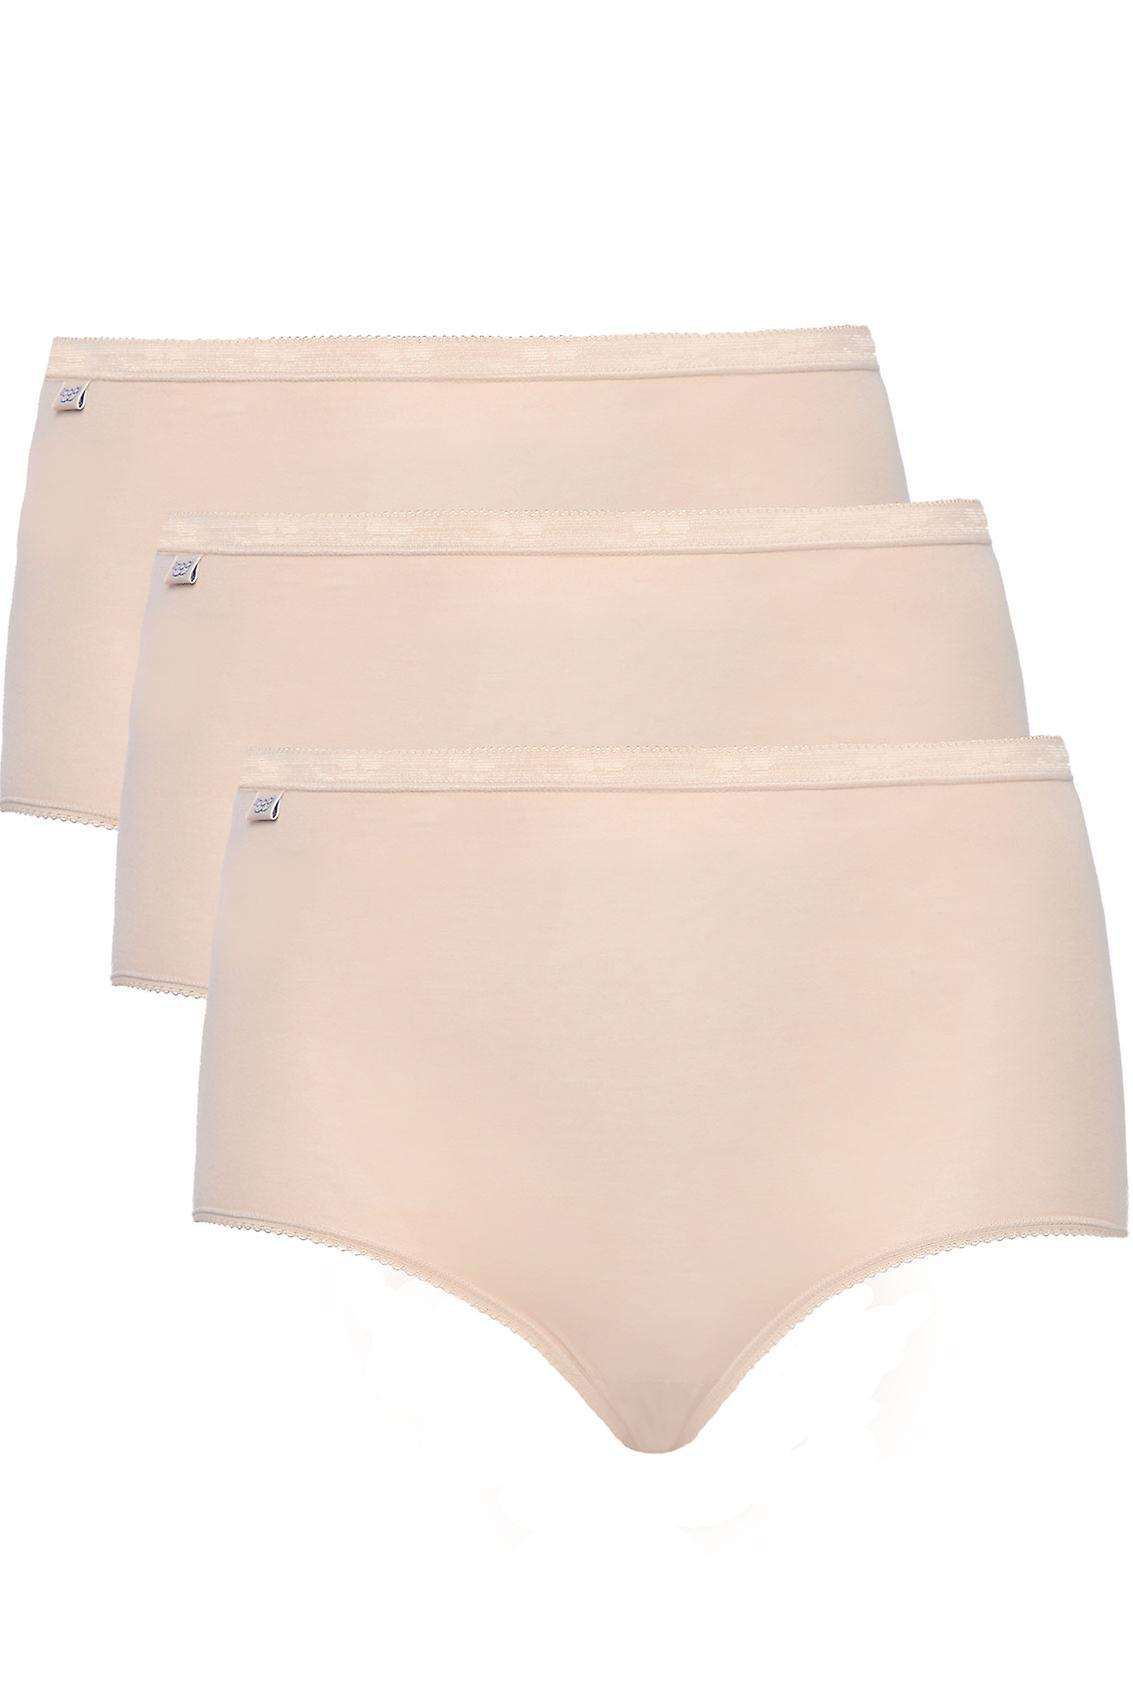 SLOGGI PACK de 3 slips Maxi base nues